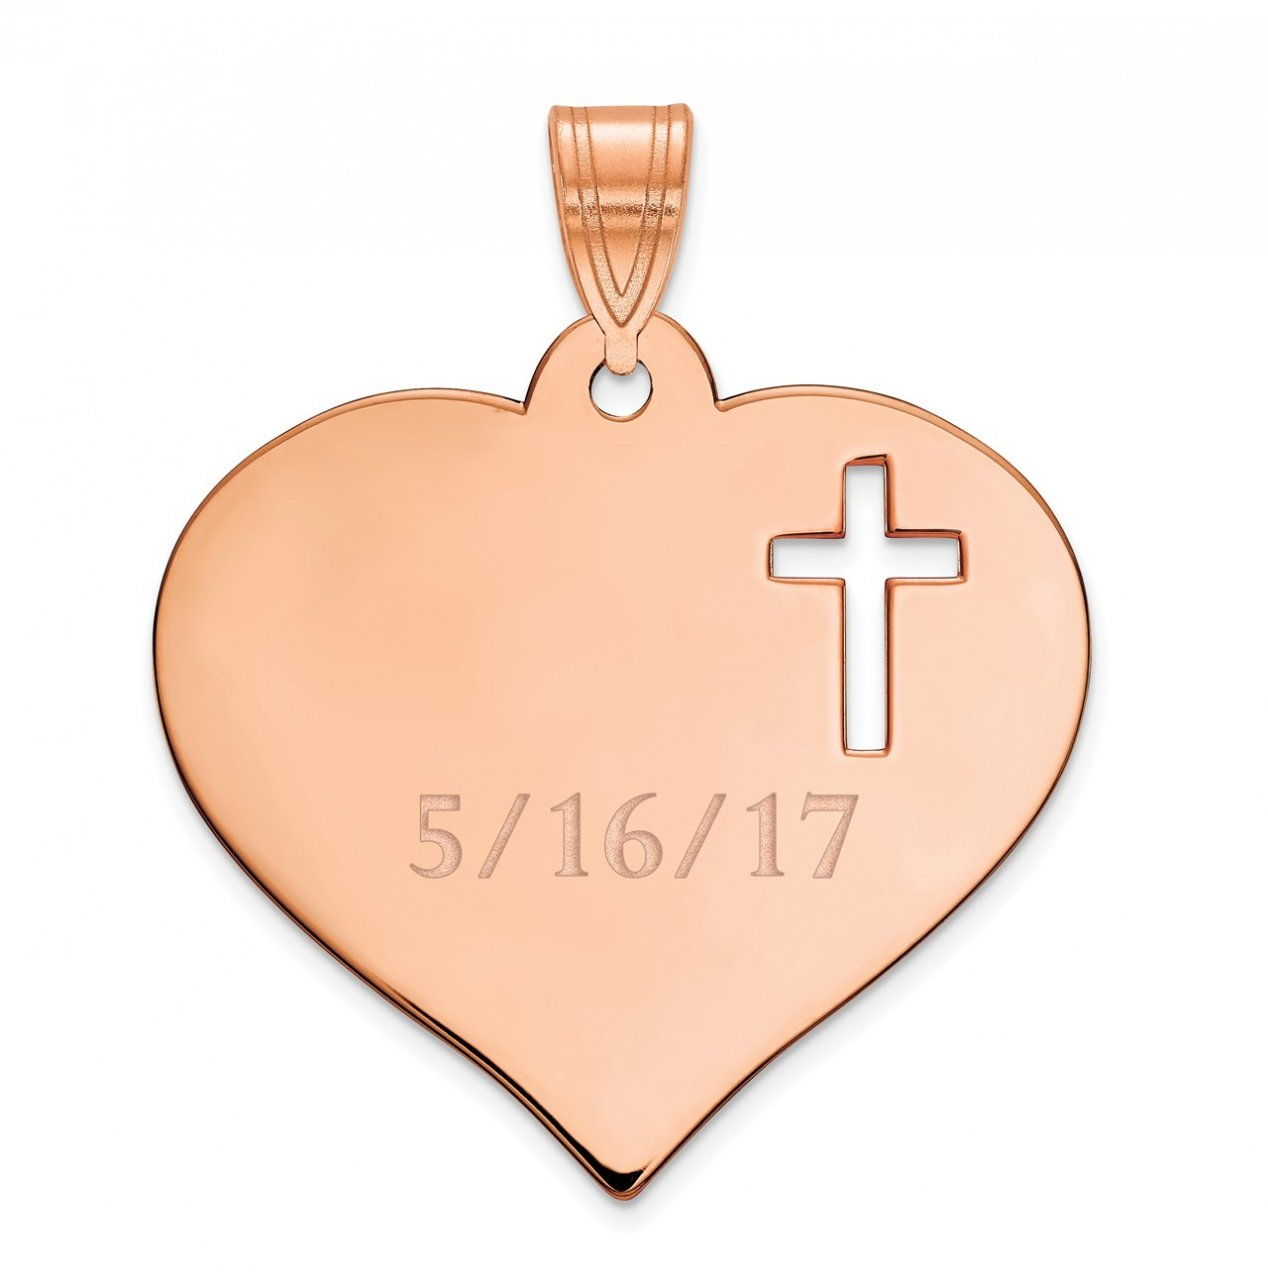 14K Rose Gold Personalized Heart with Cut Out Cross Pendant